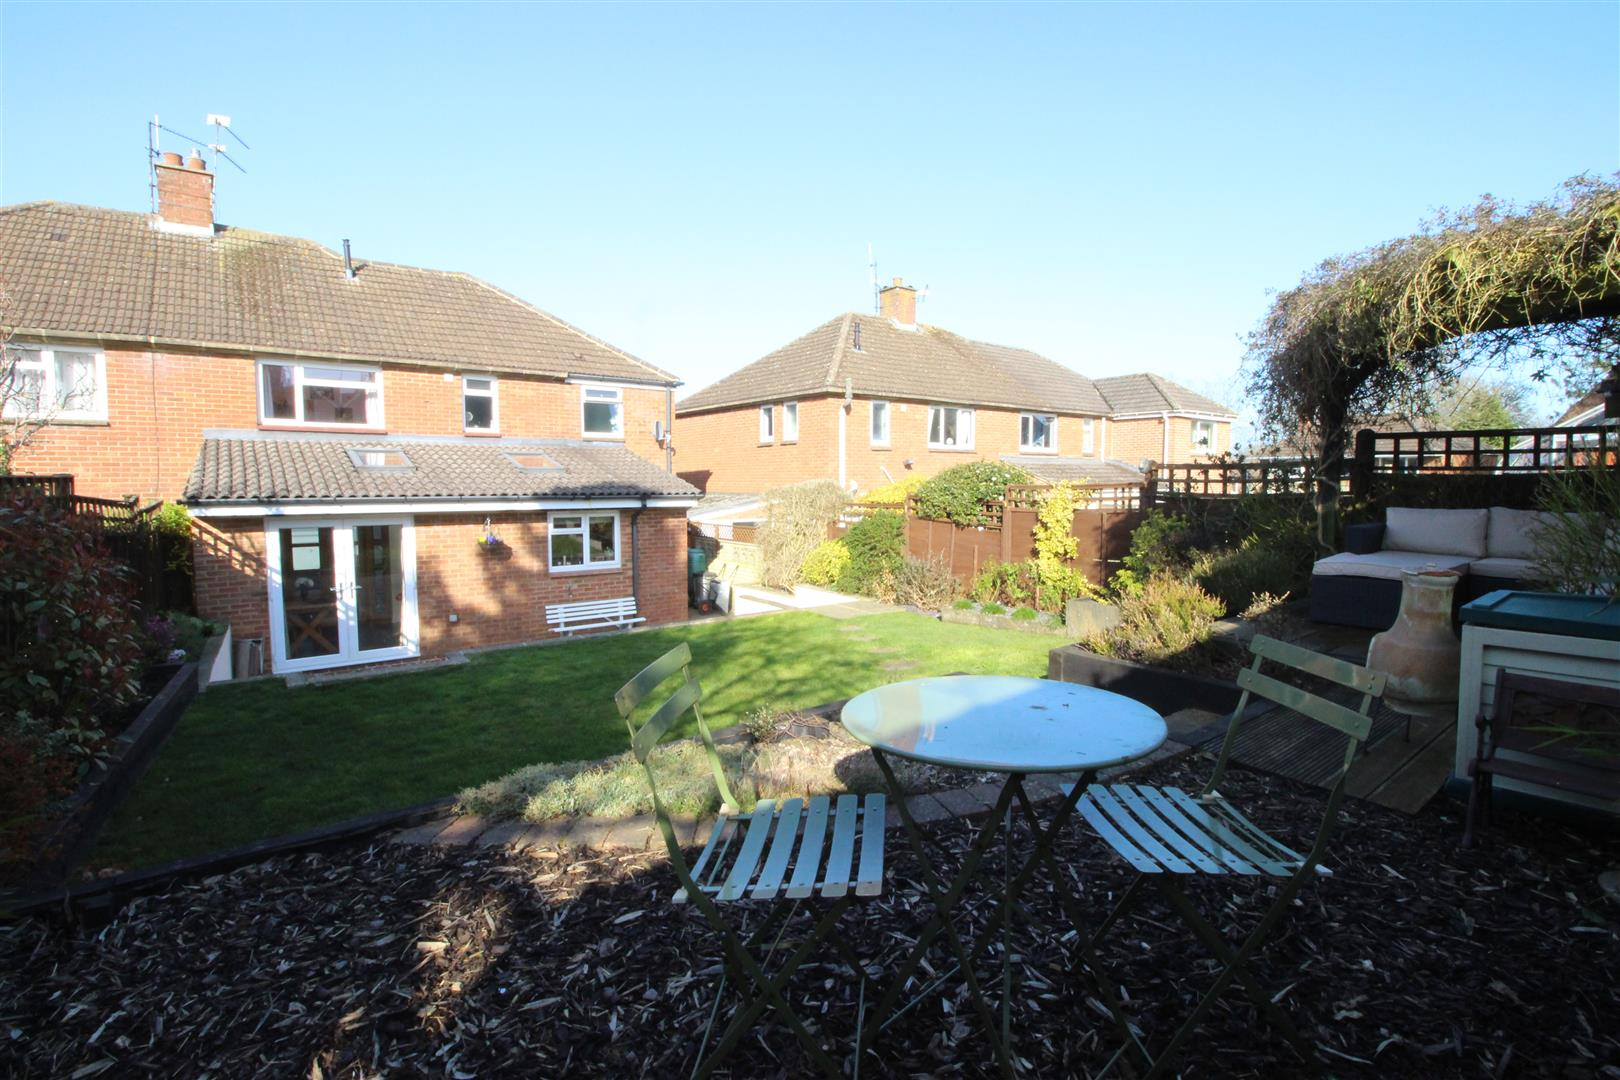 4 Bedrooms Property for sale in Kenilworth Lawns, Lawn, Swindon